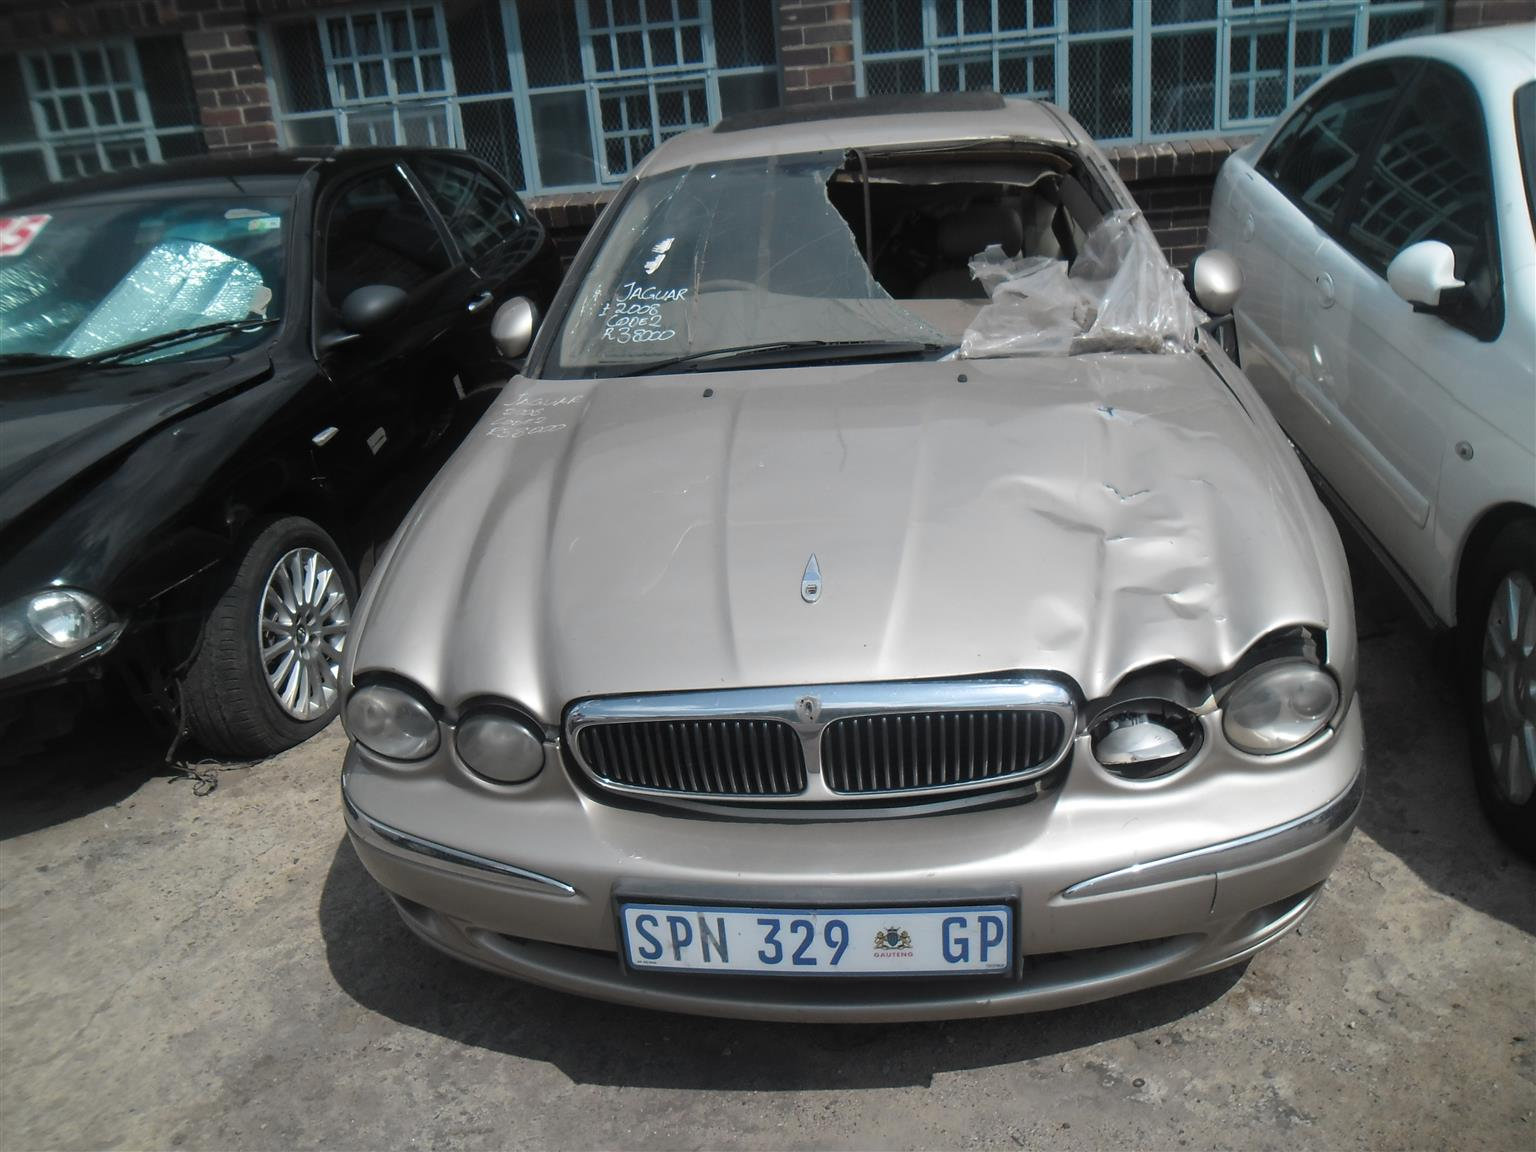 JAGUAR X-TYPE V6 3.0 STRIPPING FOR SPARES GEARBOX FOR SALE